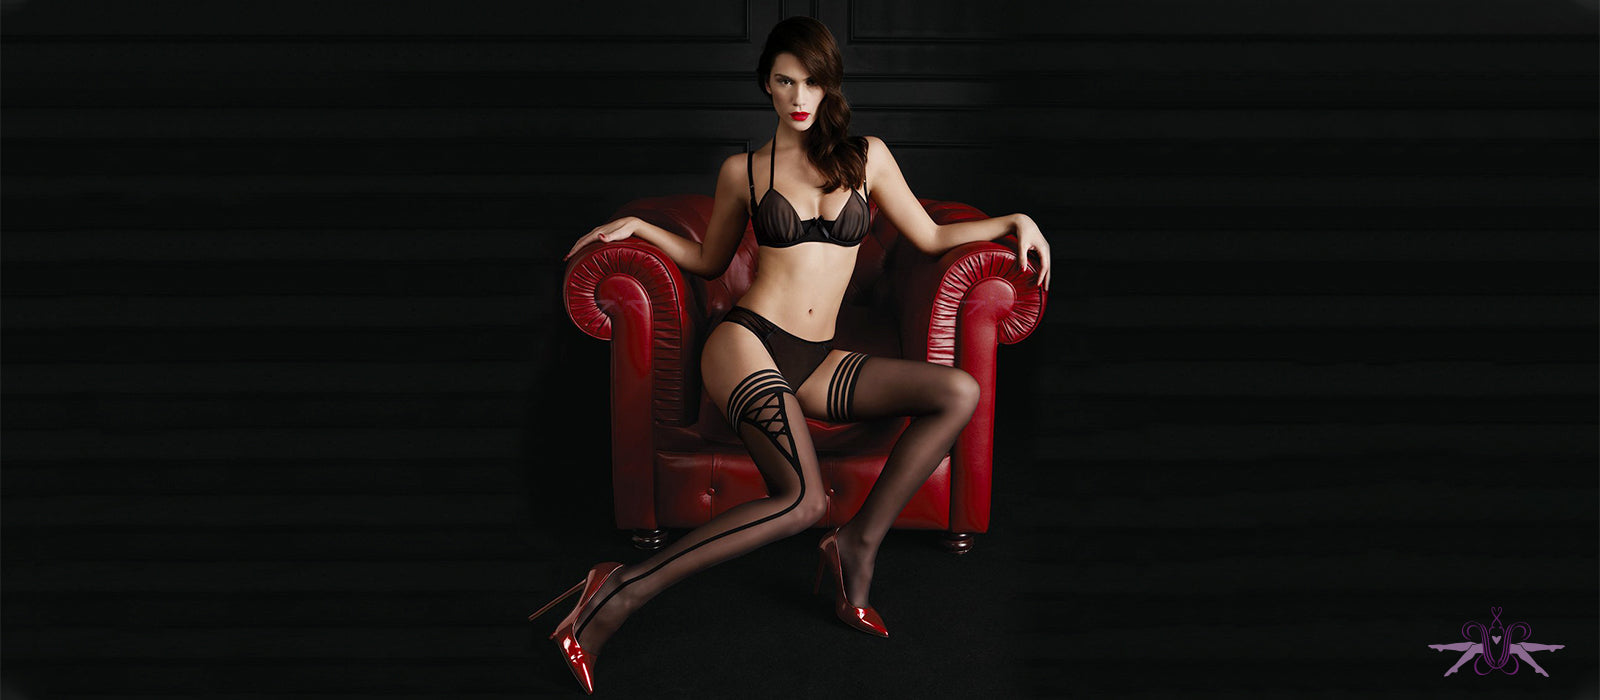 Oroblu stockings, hold ups and tights at Mayfair Stockings